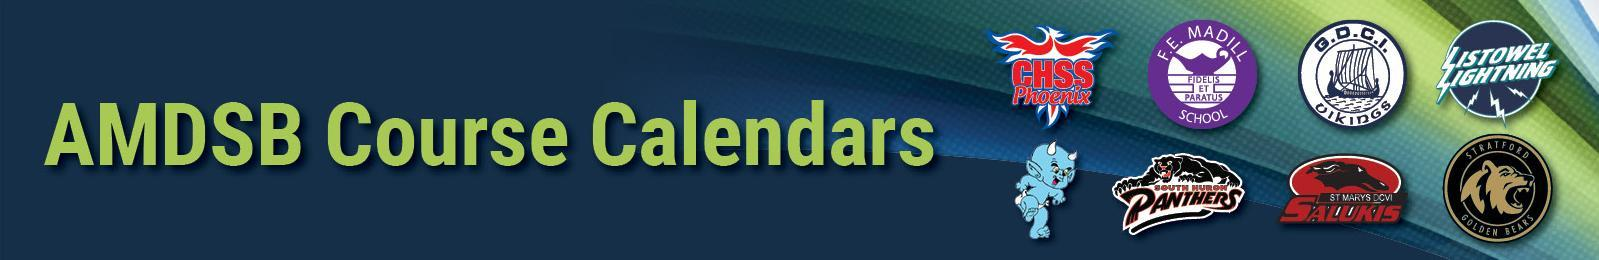 Banner image with swoops of blue and green. Text: 'Course Calendars'